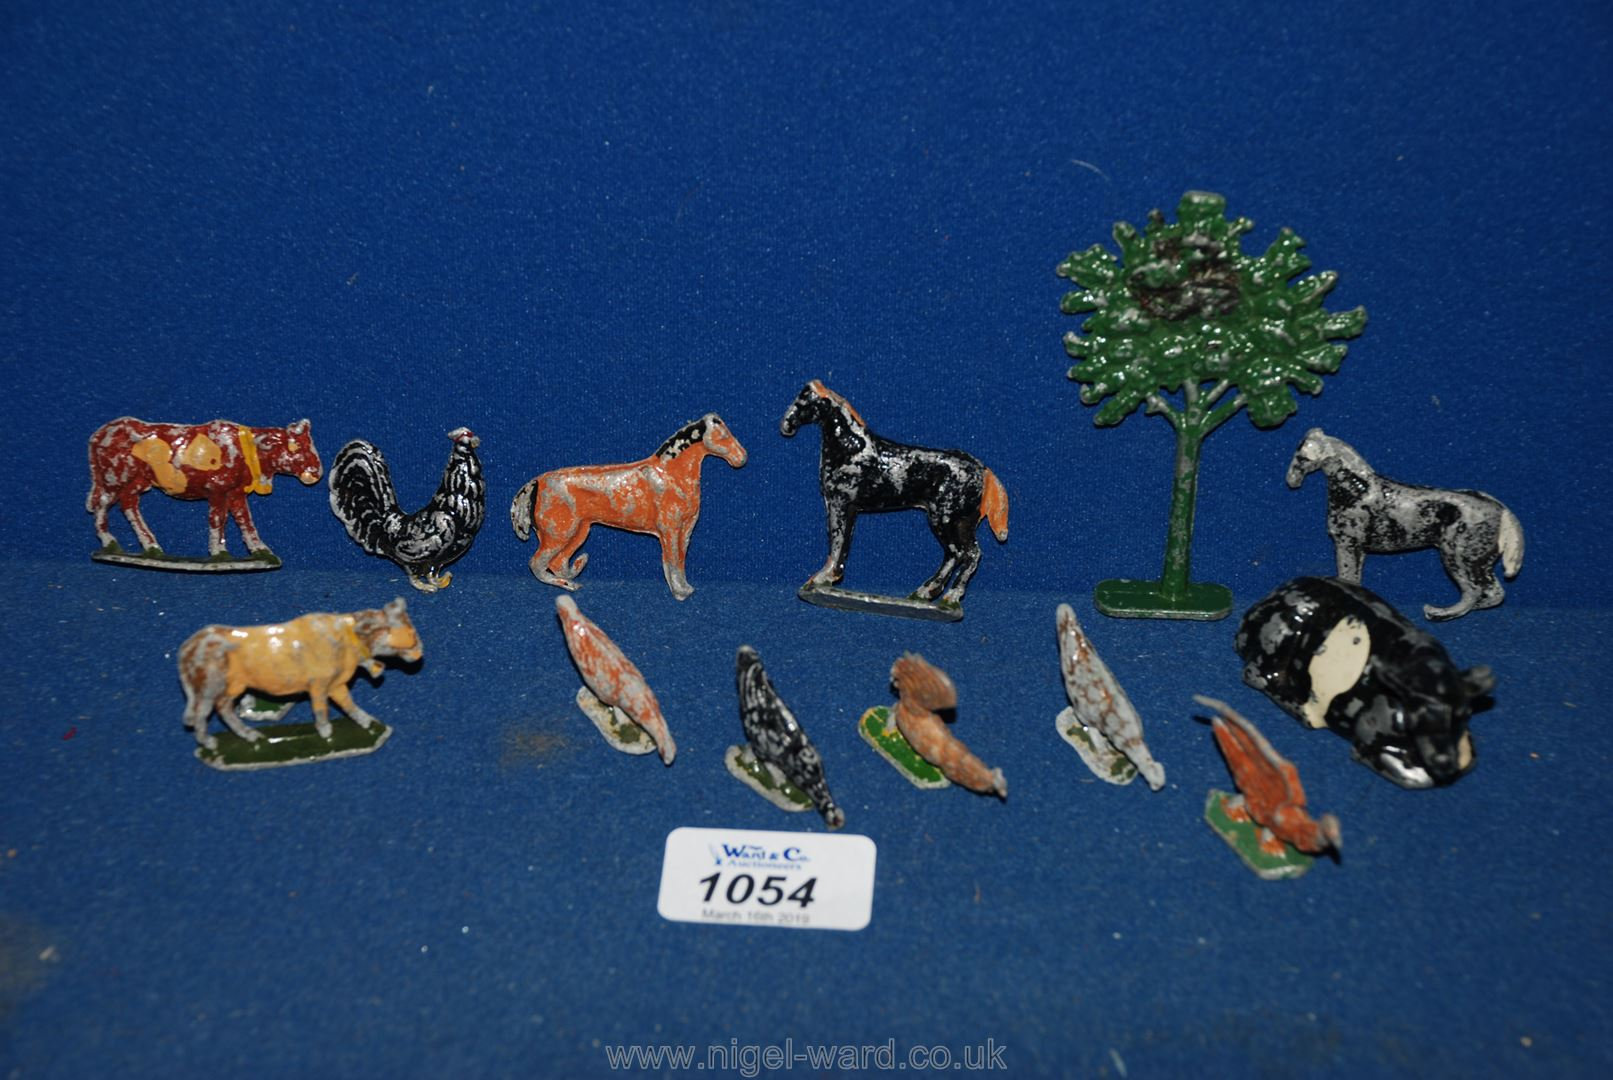 Lot 1054 - A small quantity of lead animals including cow, tree, chickens, horses, etc.